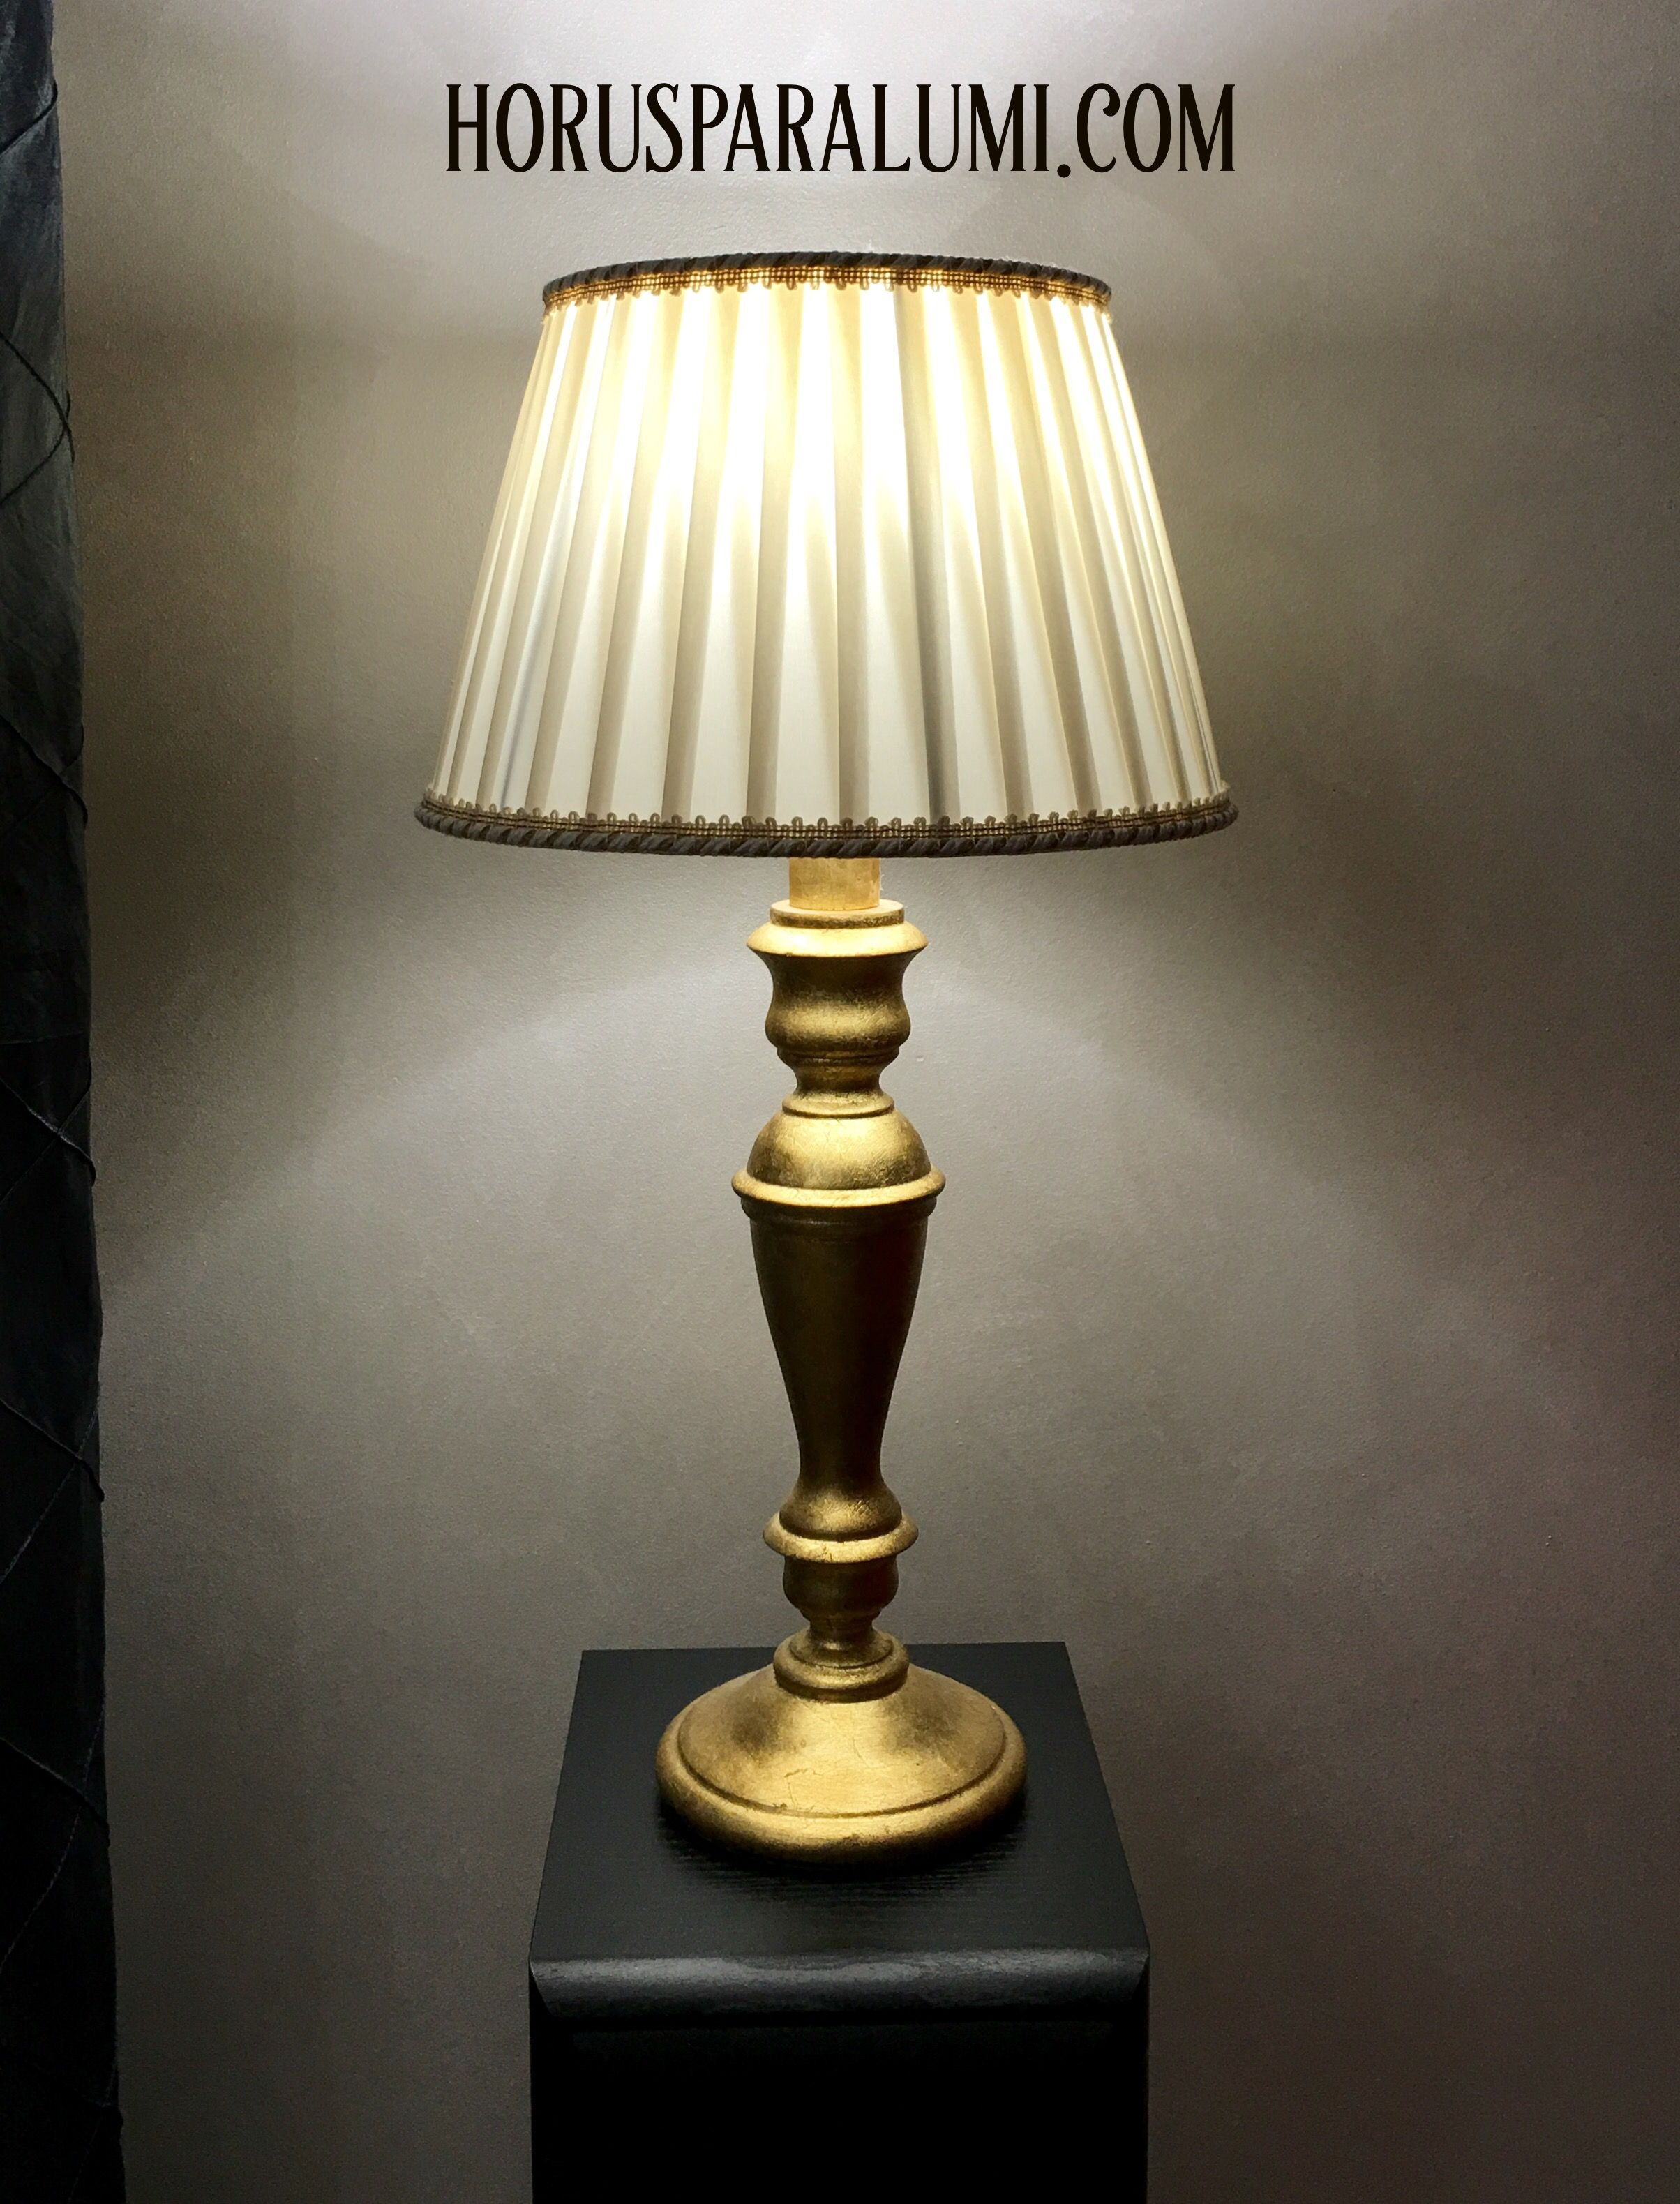 An example of our lampshades!